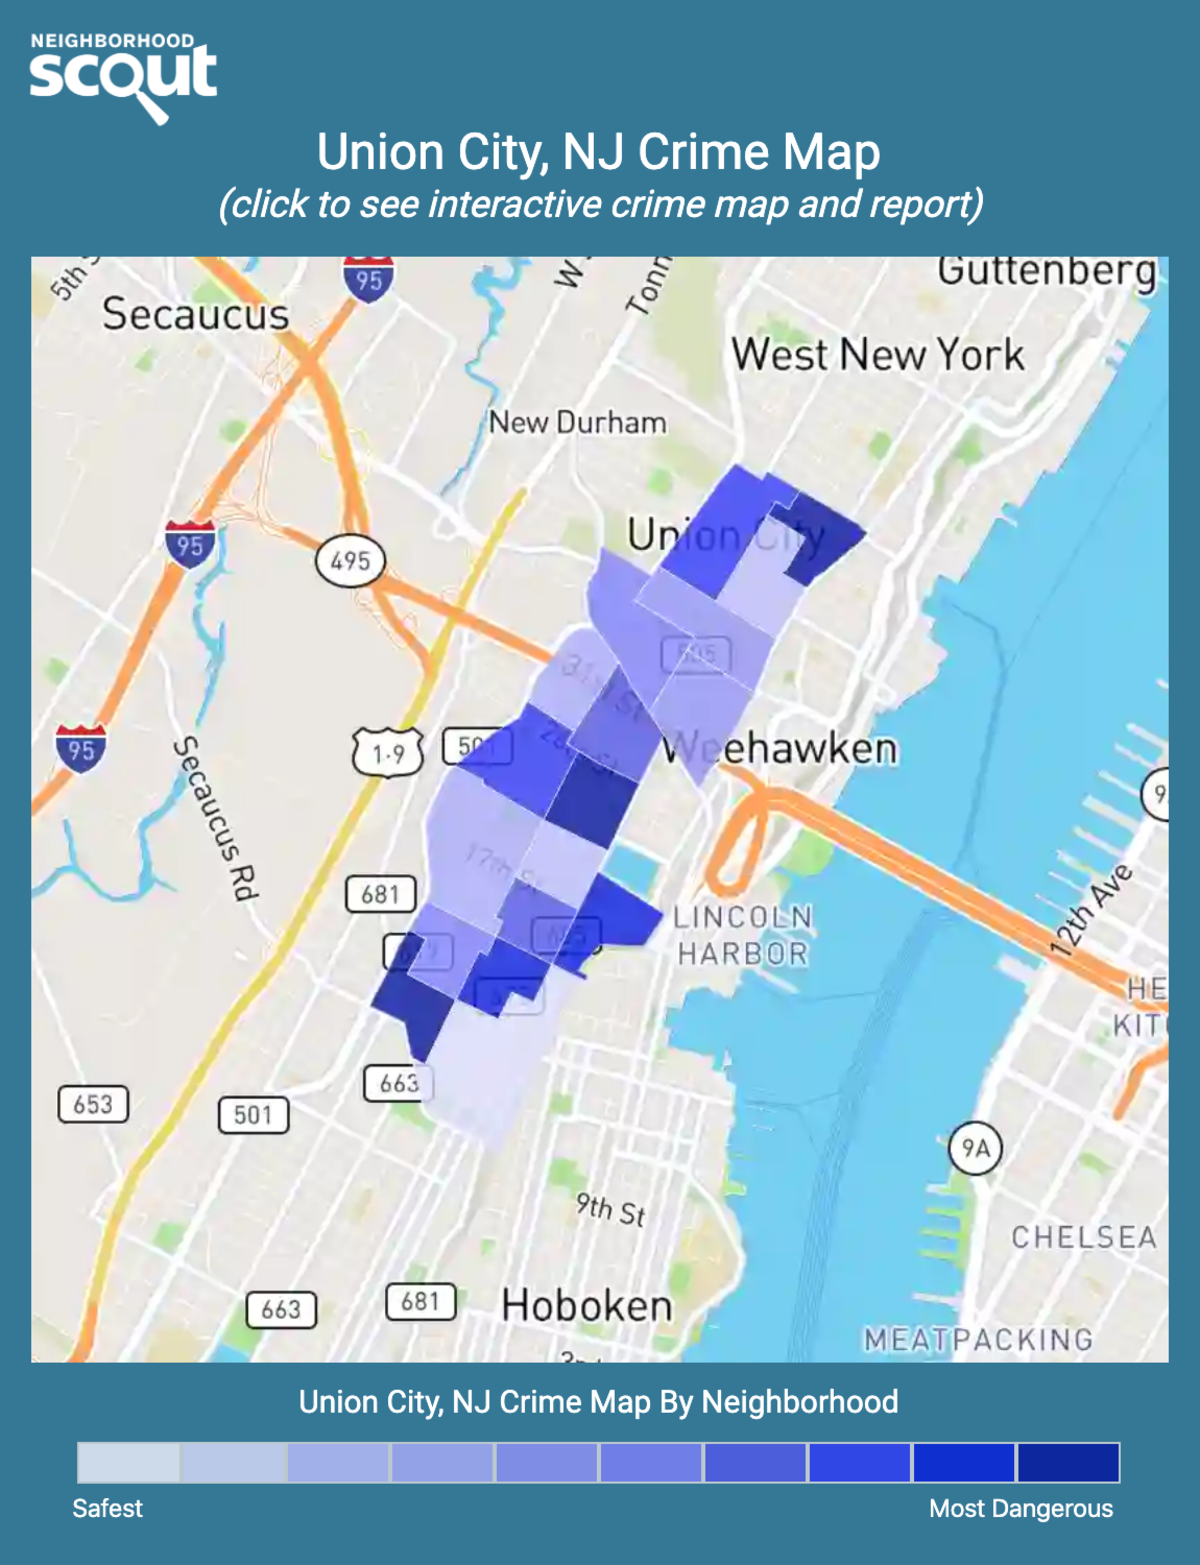 Union City, New Jersey crime map